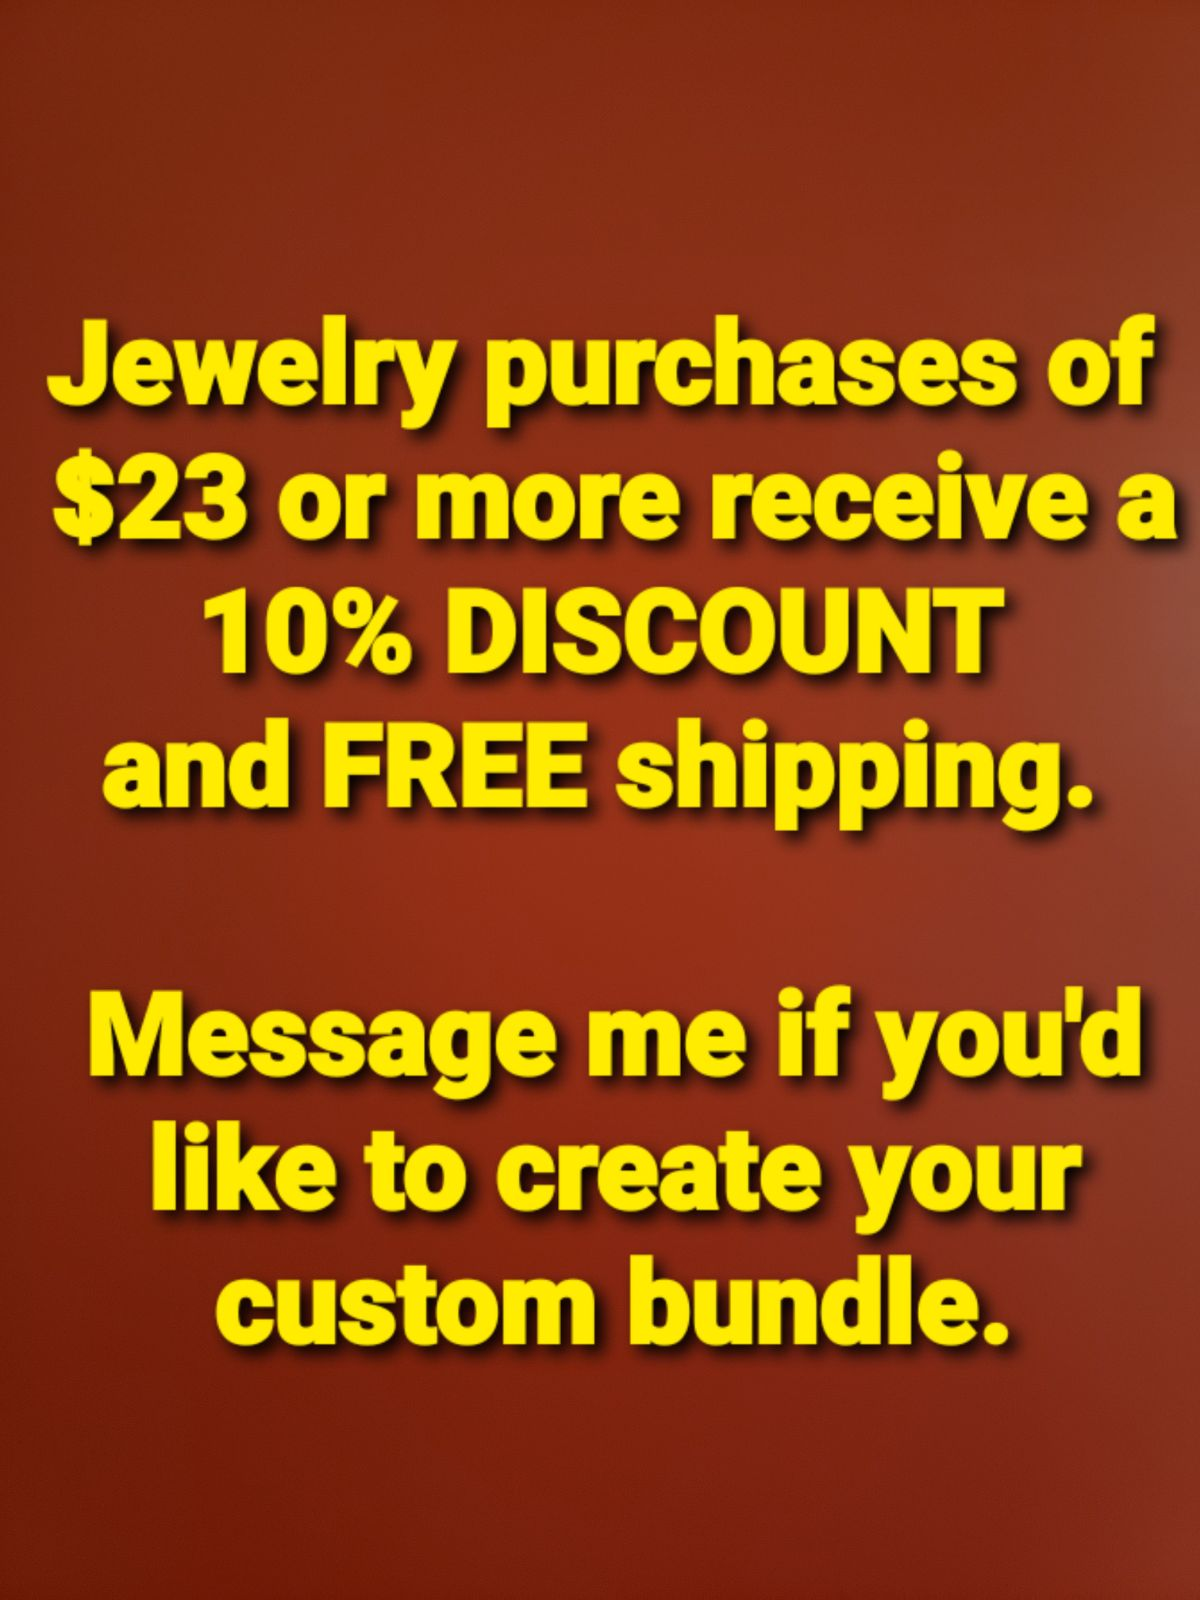 JEWELRY - Bundle and Save!